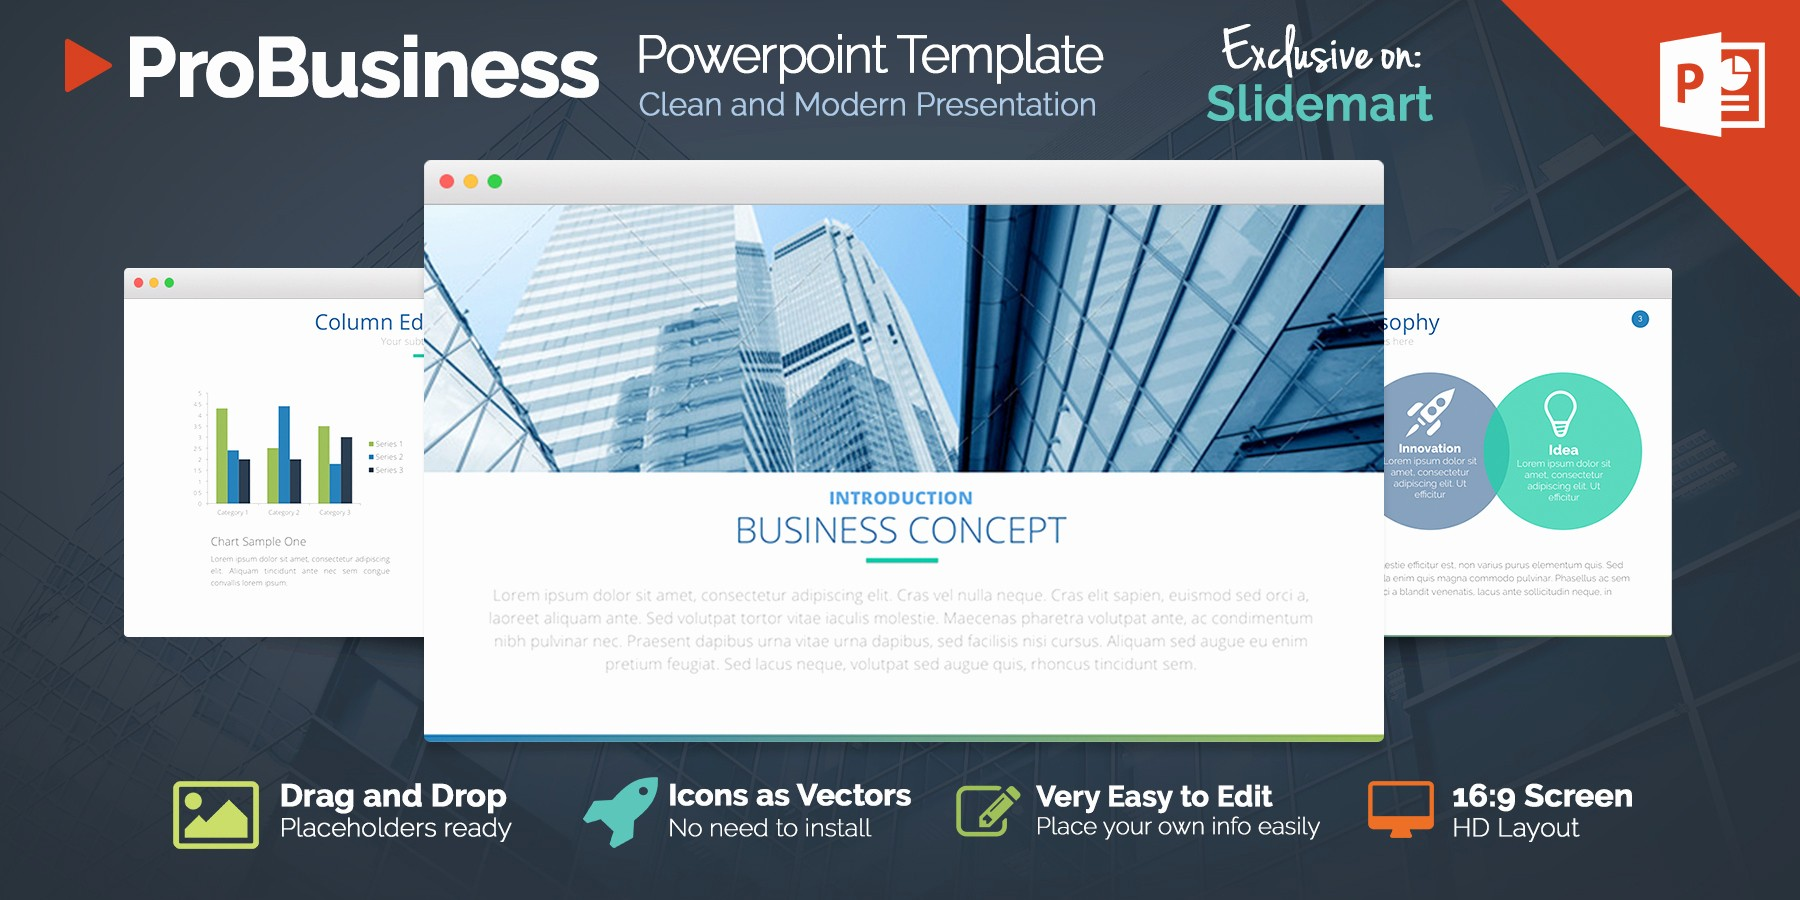 Ppt Templates for Business Presentation Fresh the Best 8 Free Powerpoint Templates